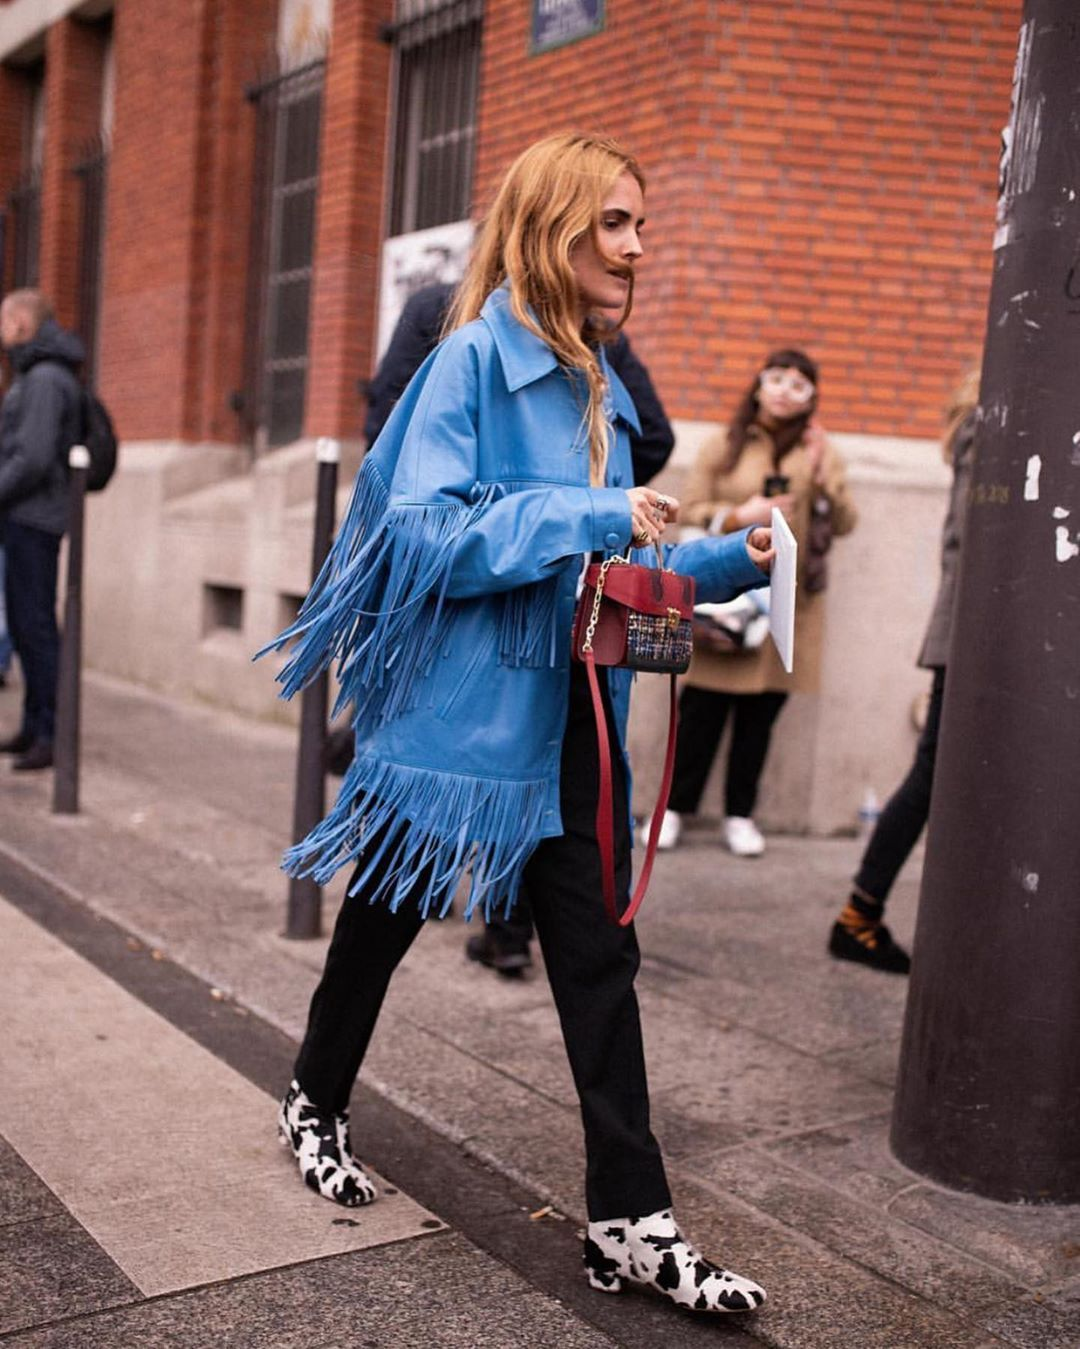 dan-cassab-loretta-lamb-leather-fringed-jacket-blue-blanca-miro-street-style